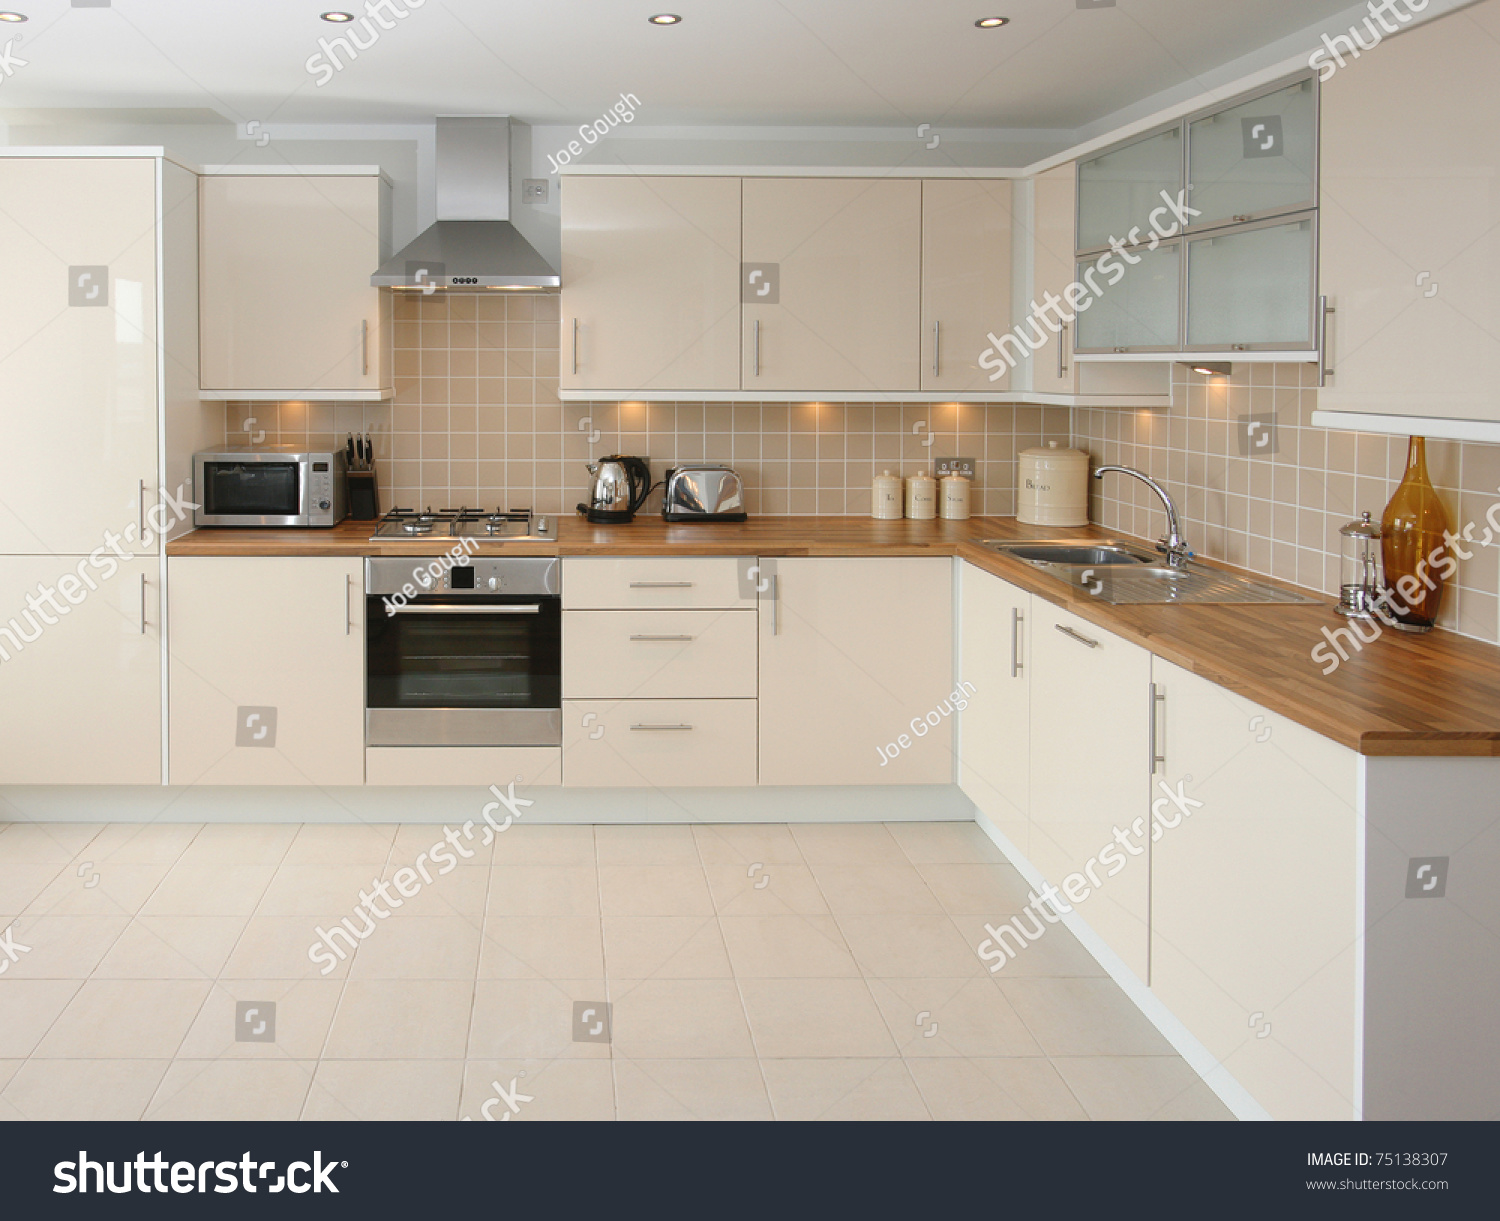 Online image photo editor shutterstock editor for Kitchen interior images